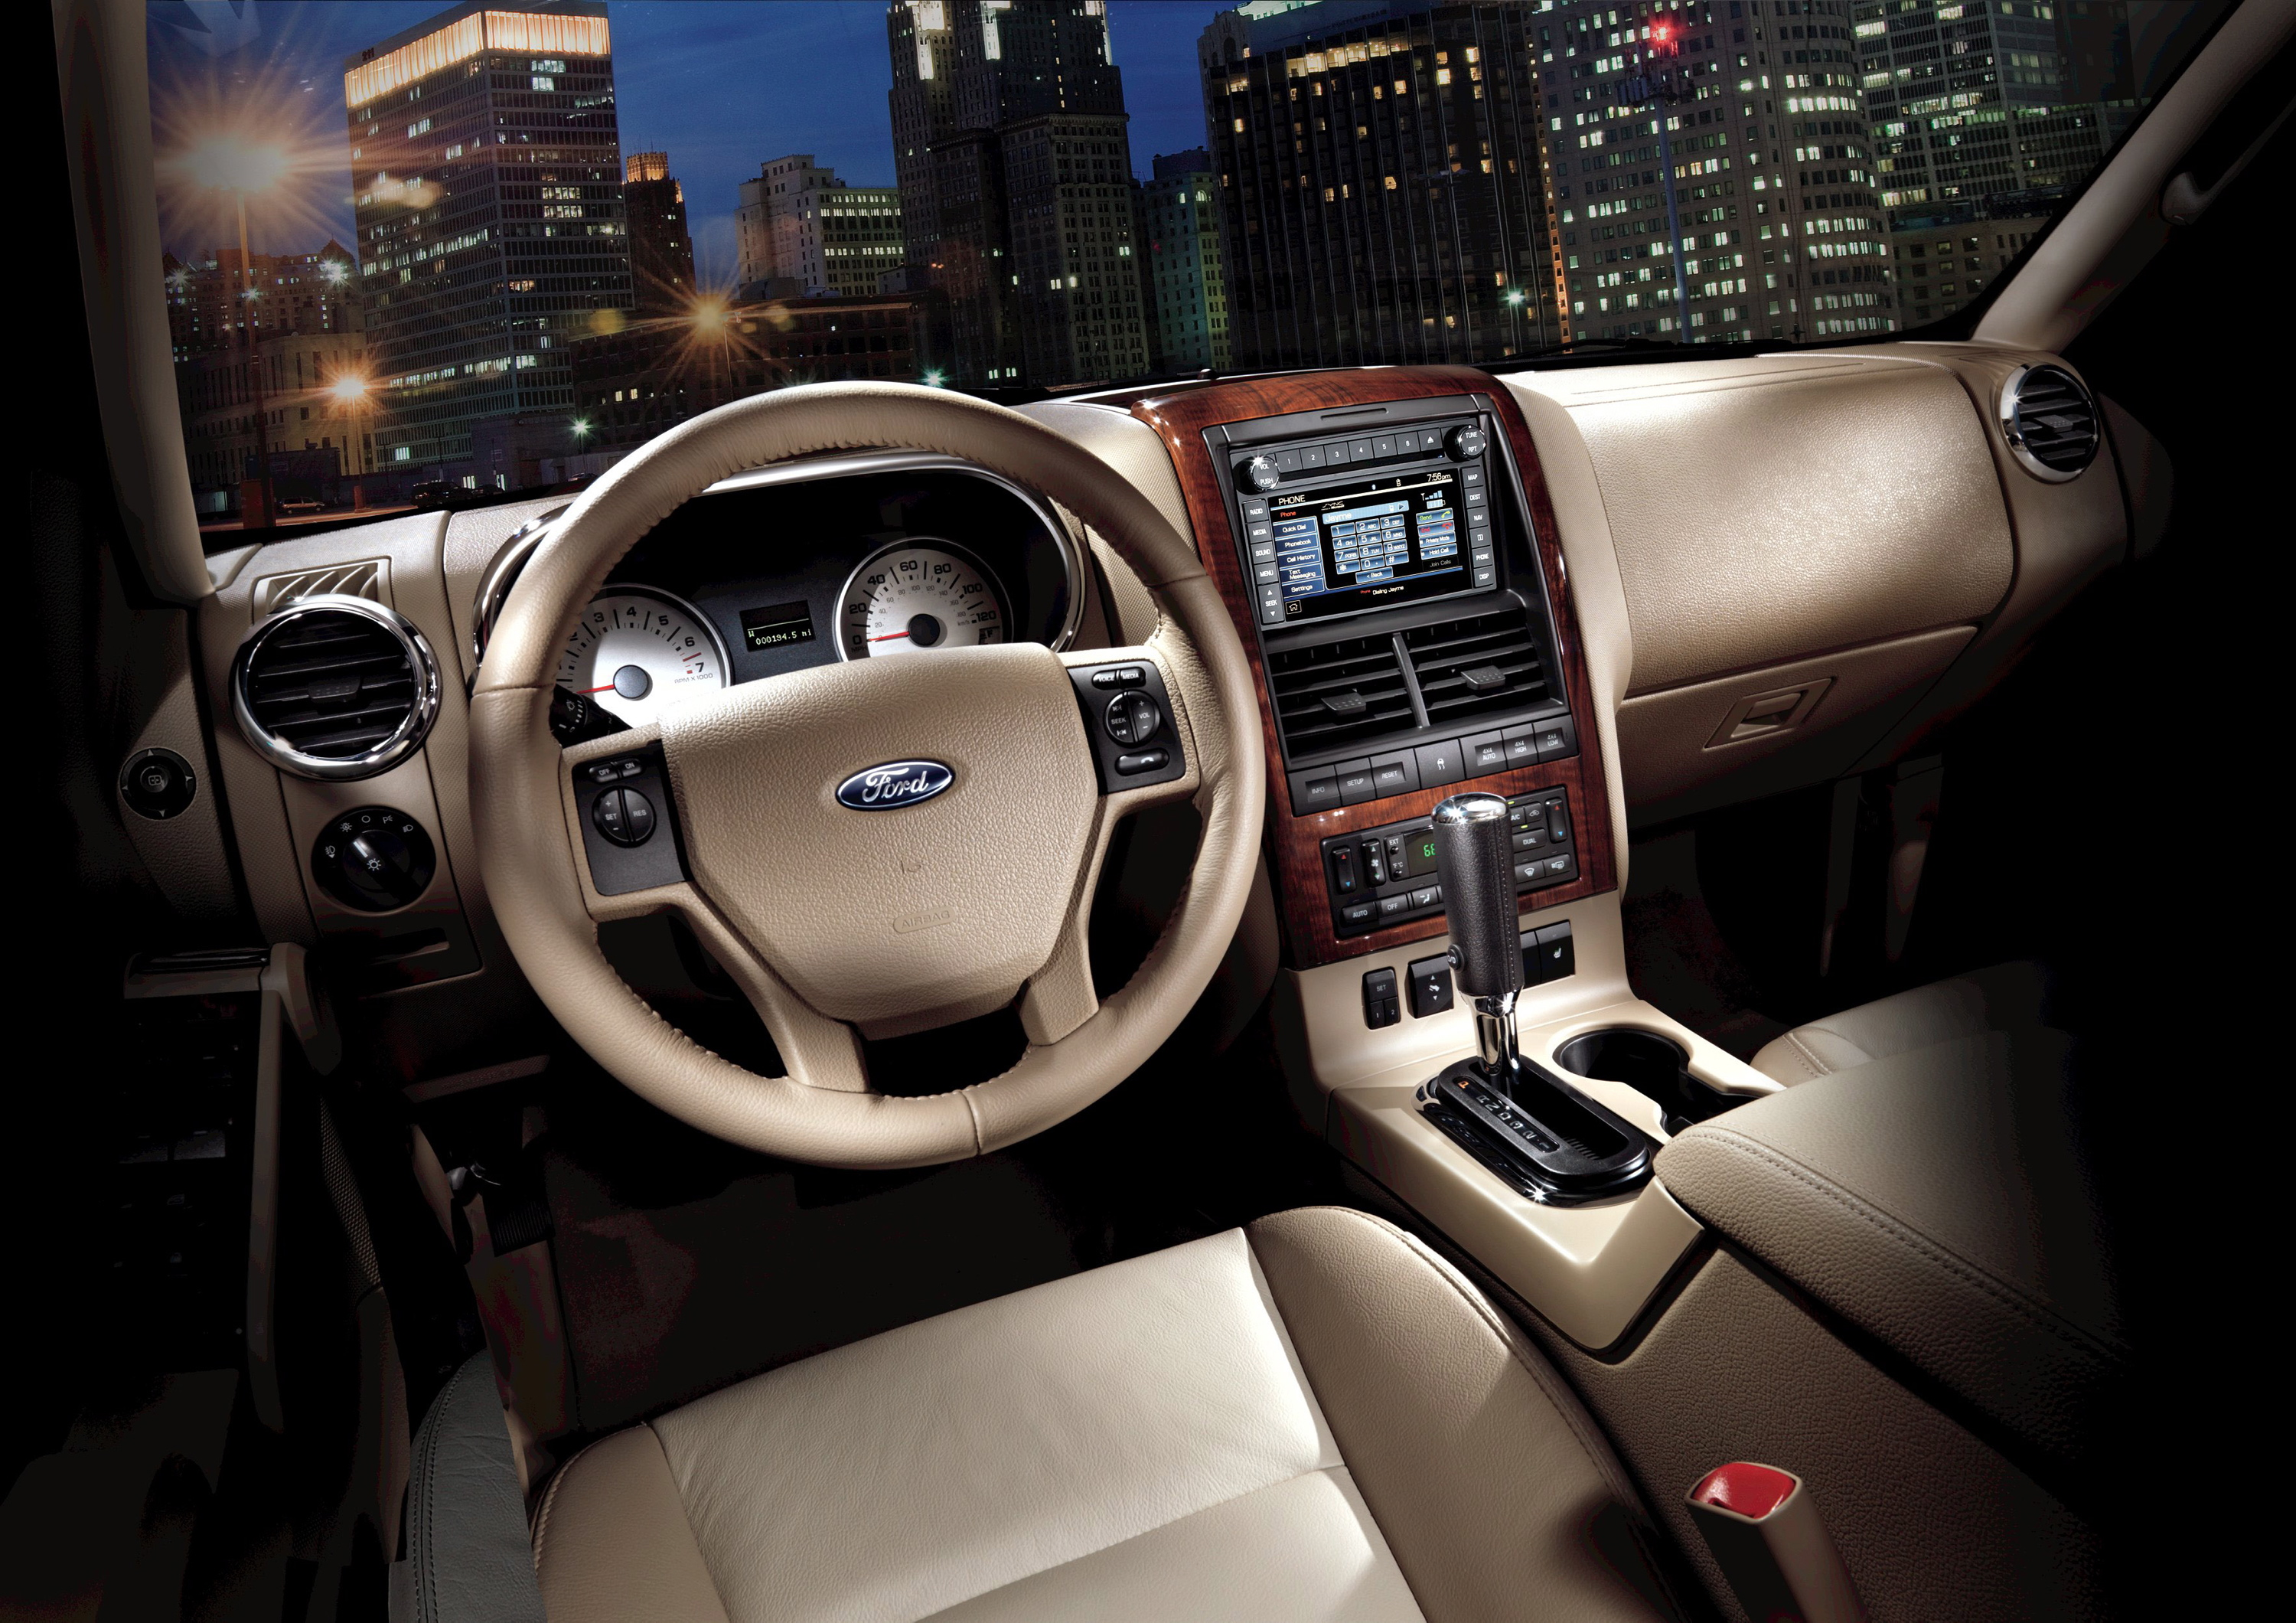 Ford gets serious about car recycling 2000 ford explorer interior parts